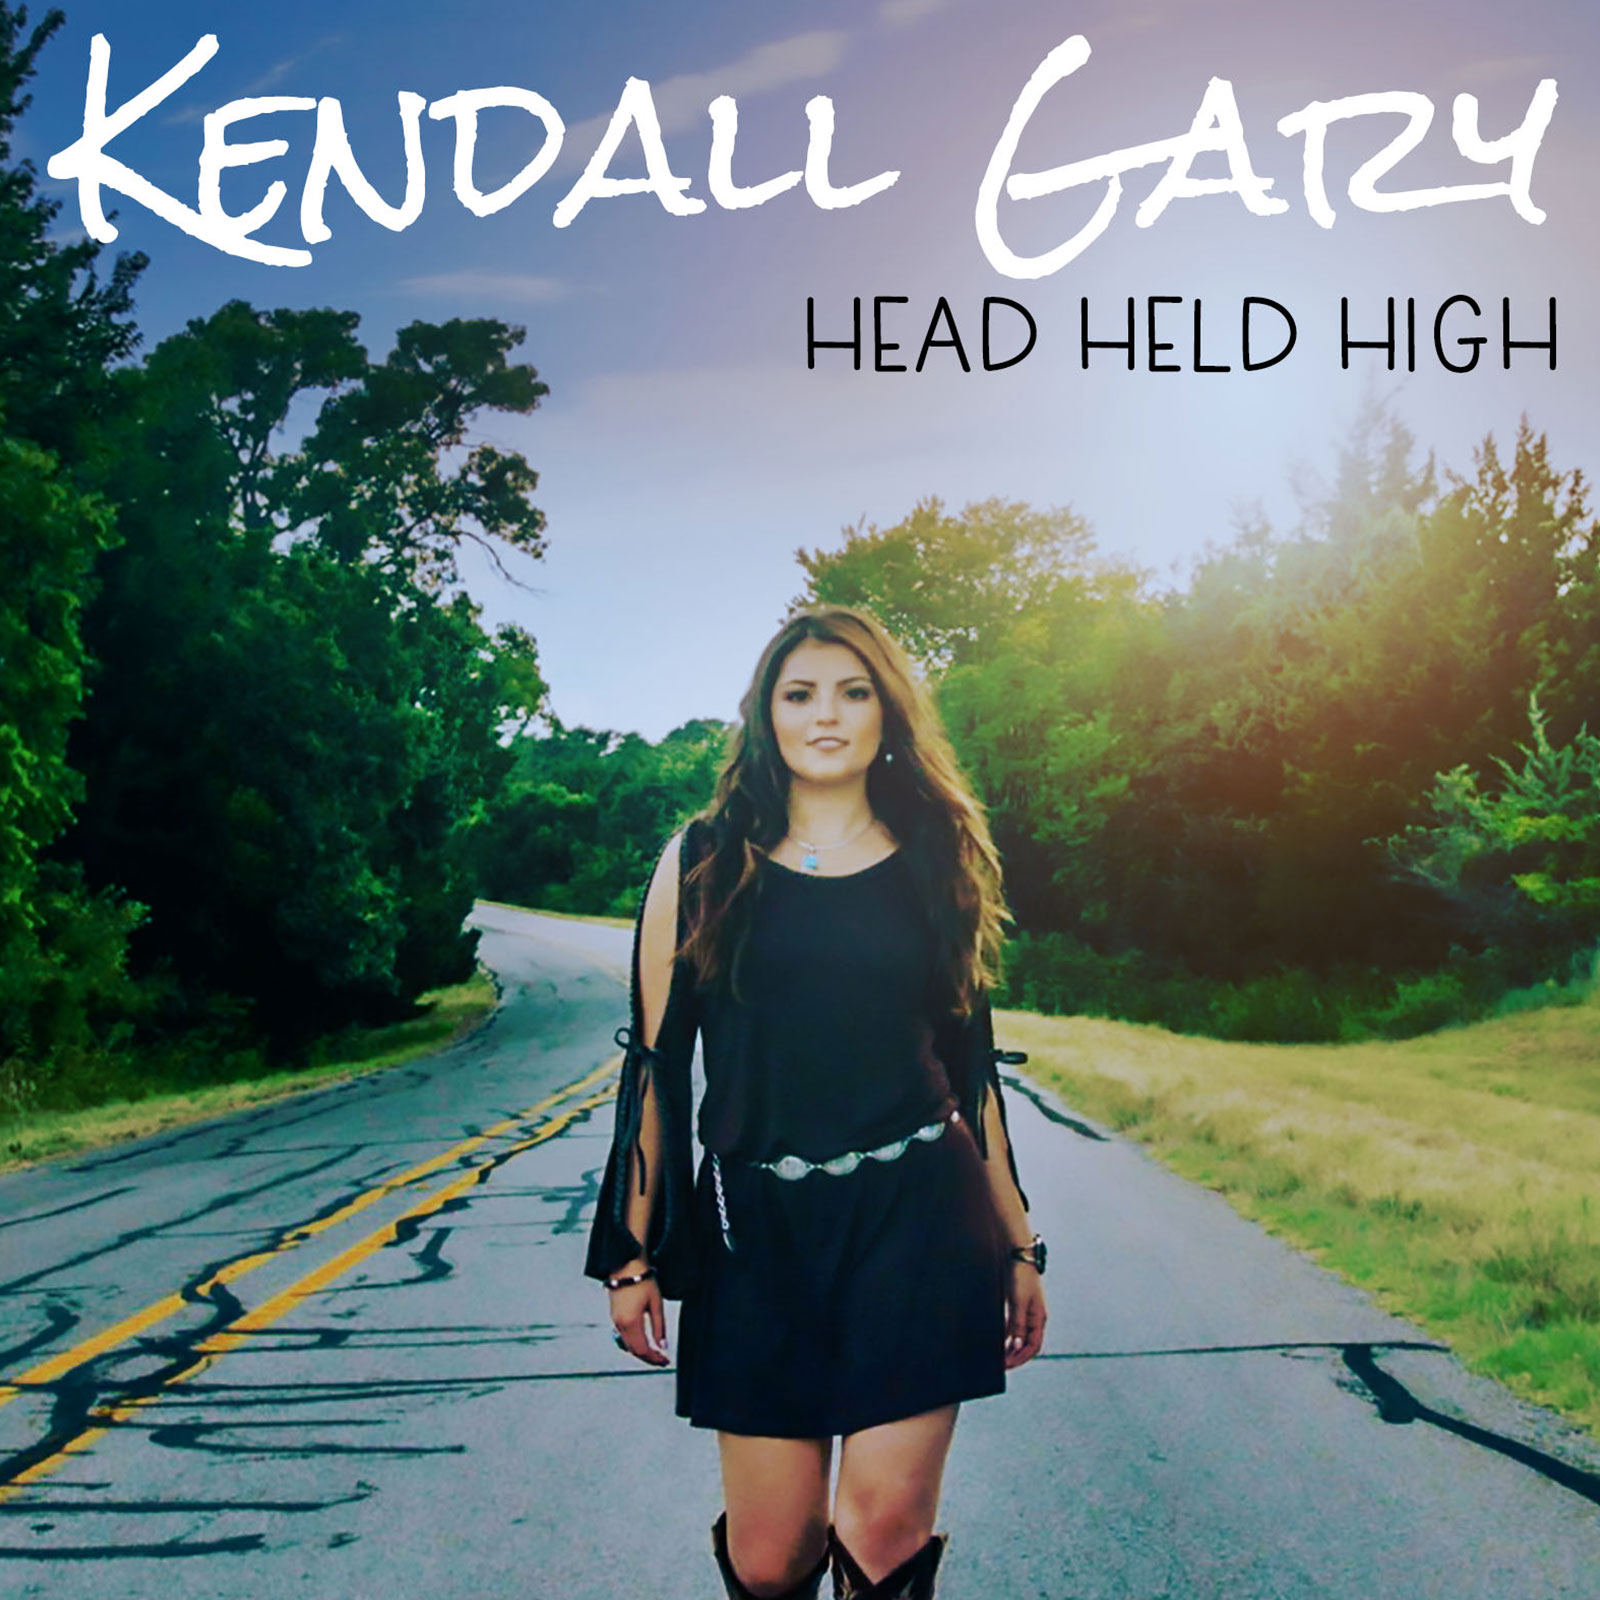 Kendall Gary album cover for Head Held High